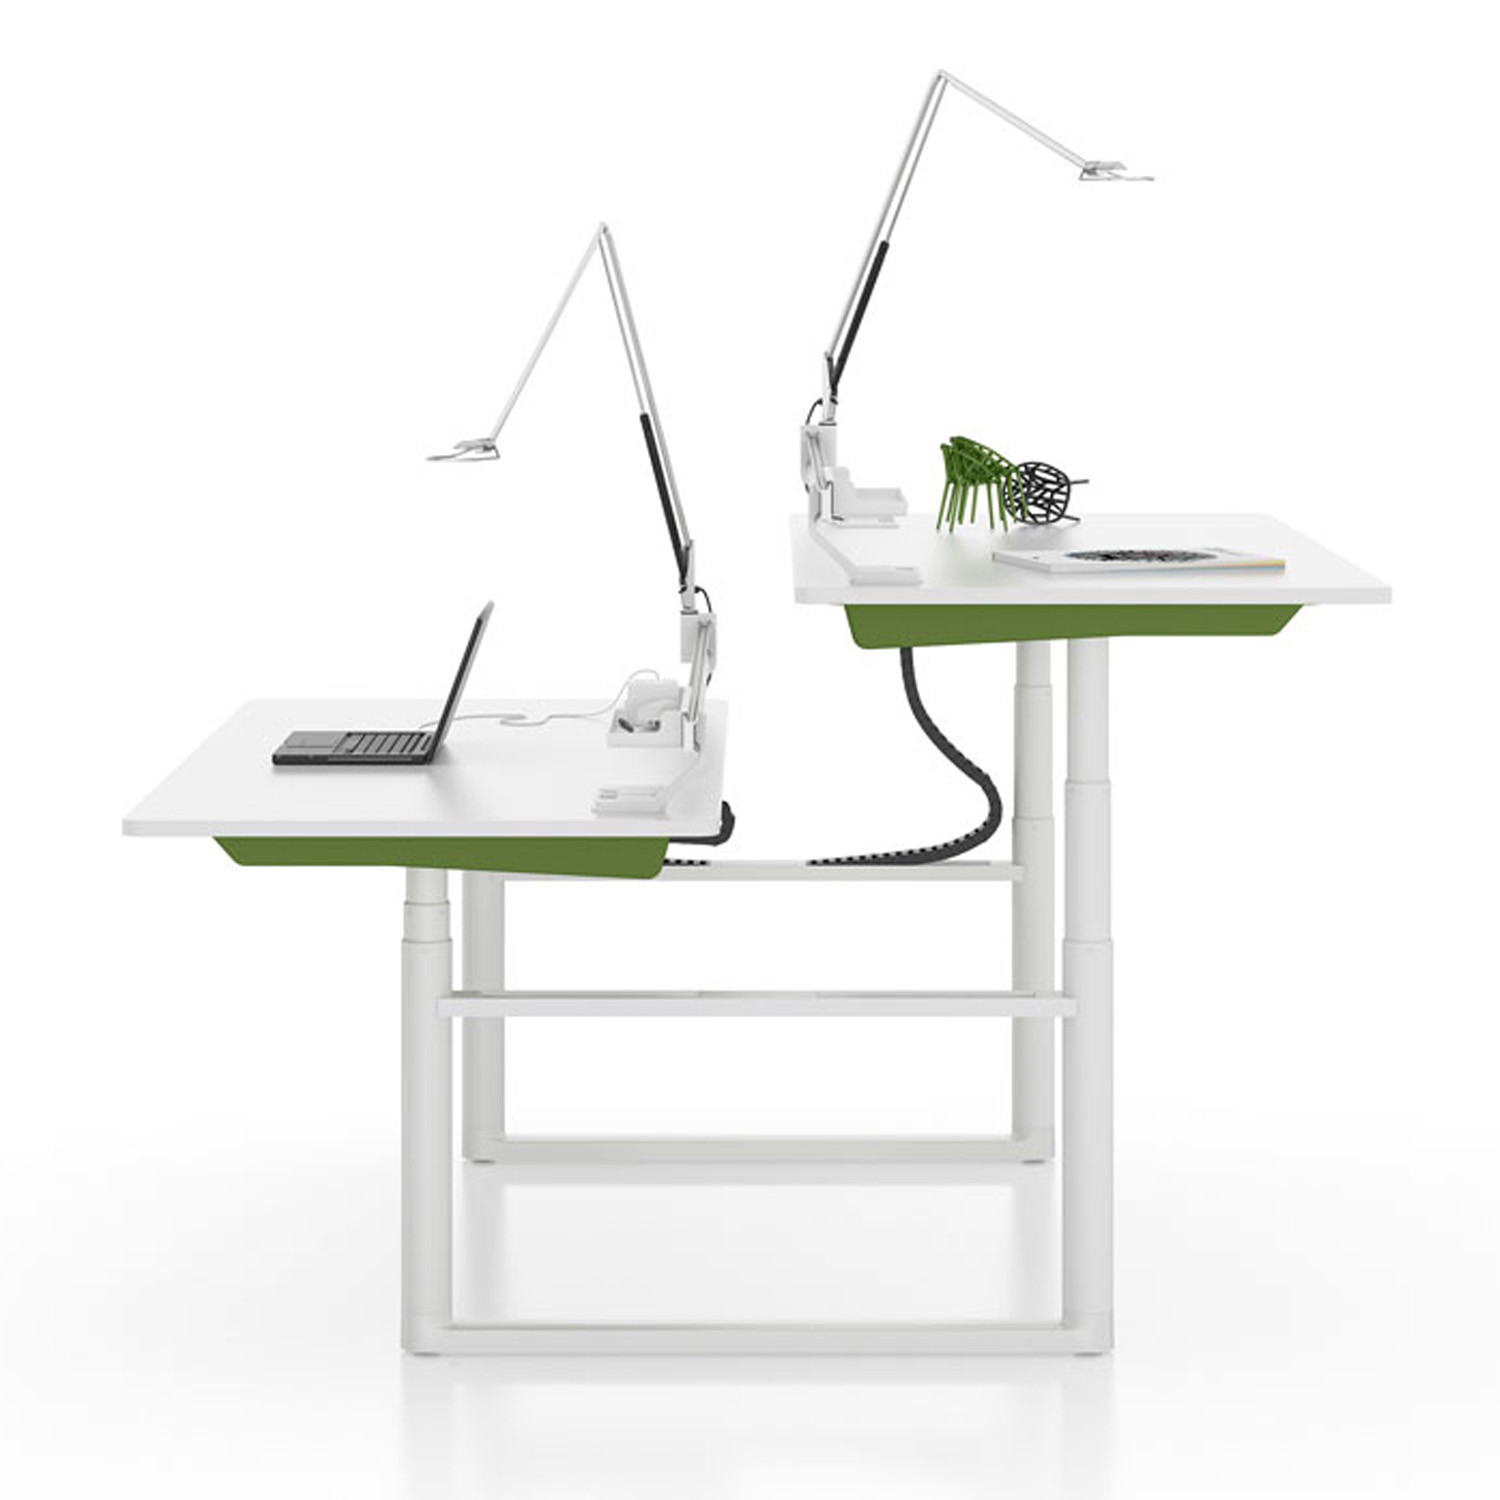 Tyde Height-Adjustable Desk